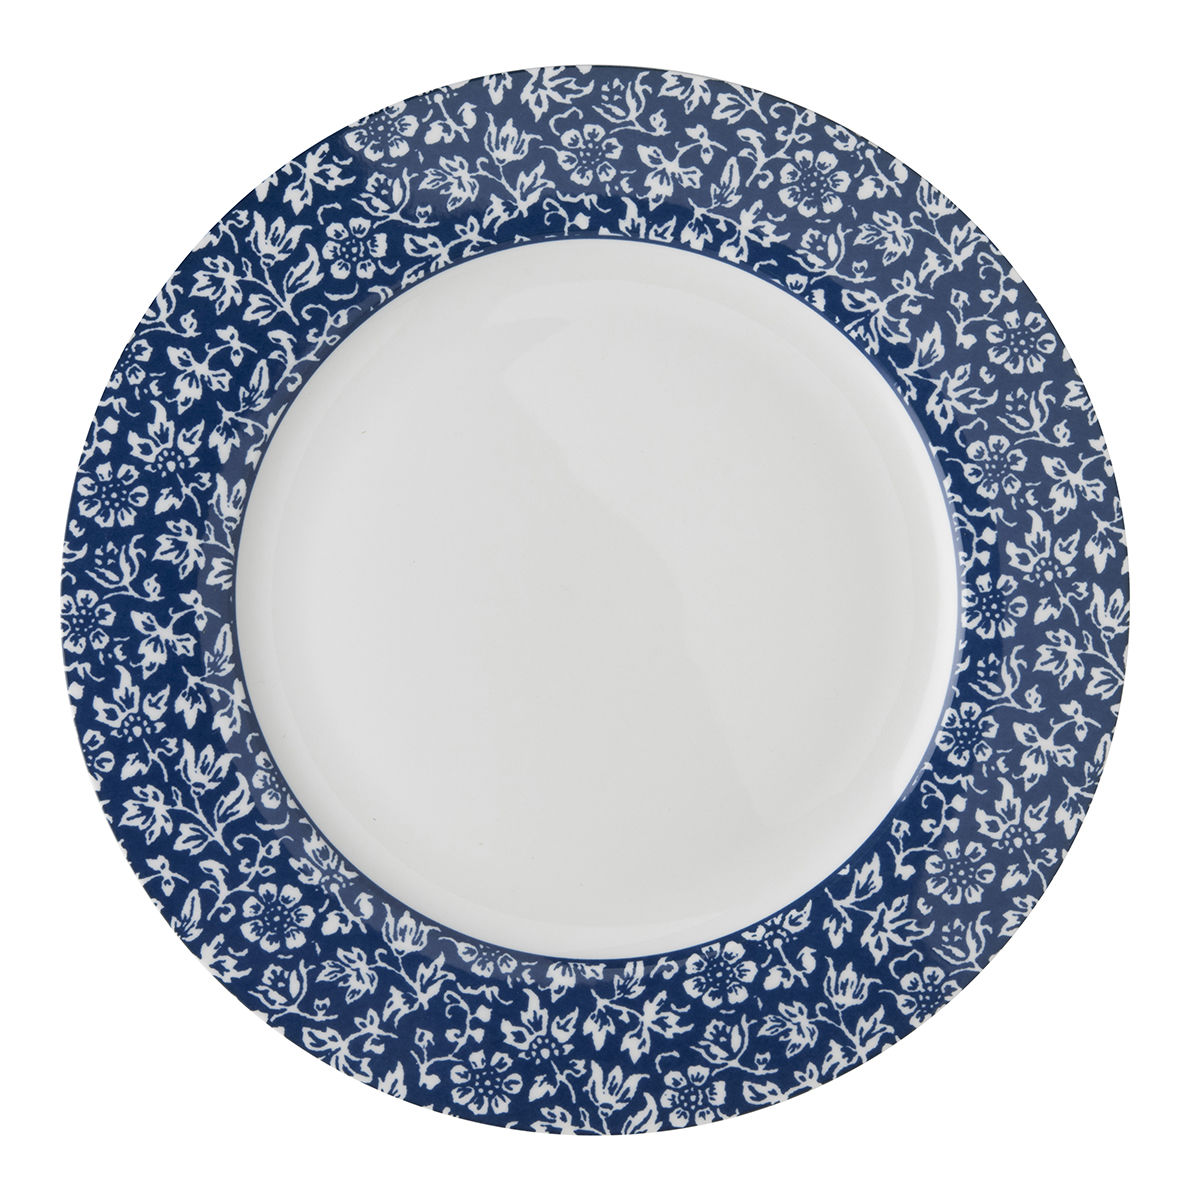 "Laura Ashley 10.5"" Plate Sweet Allysum - product images  of"